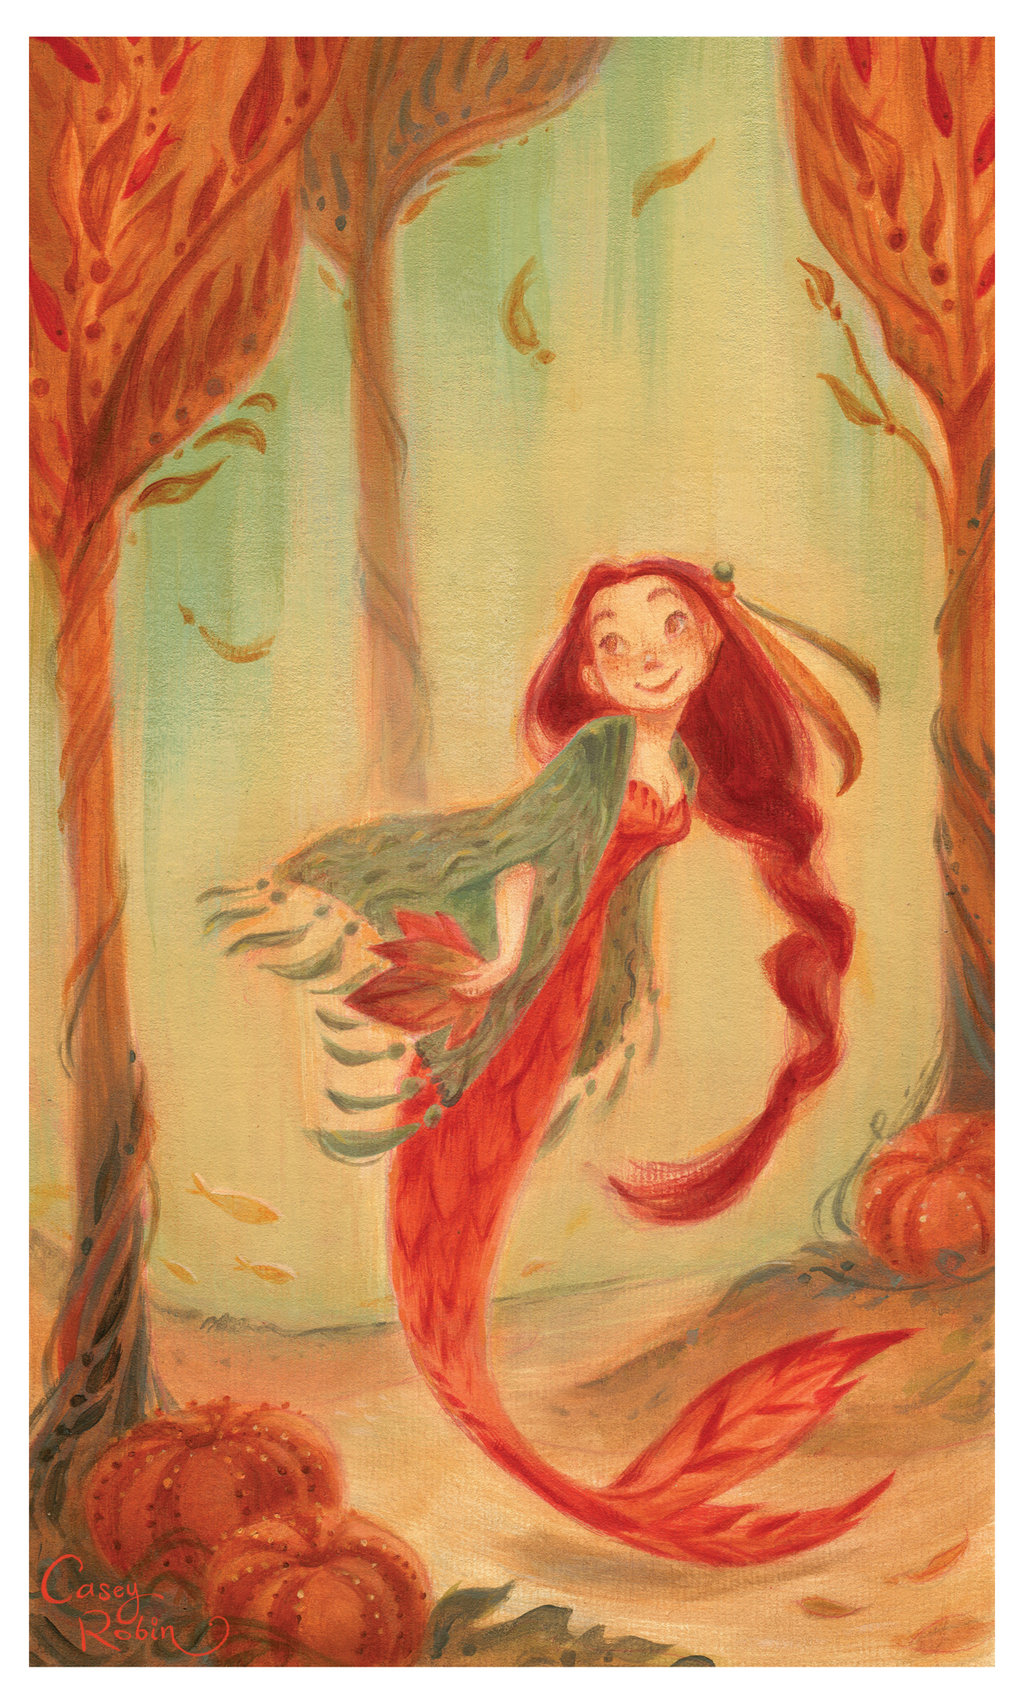 autumn_mermaid_by_caseyrobin-d6jghad